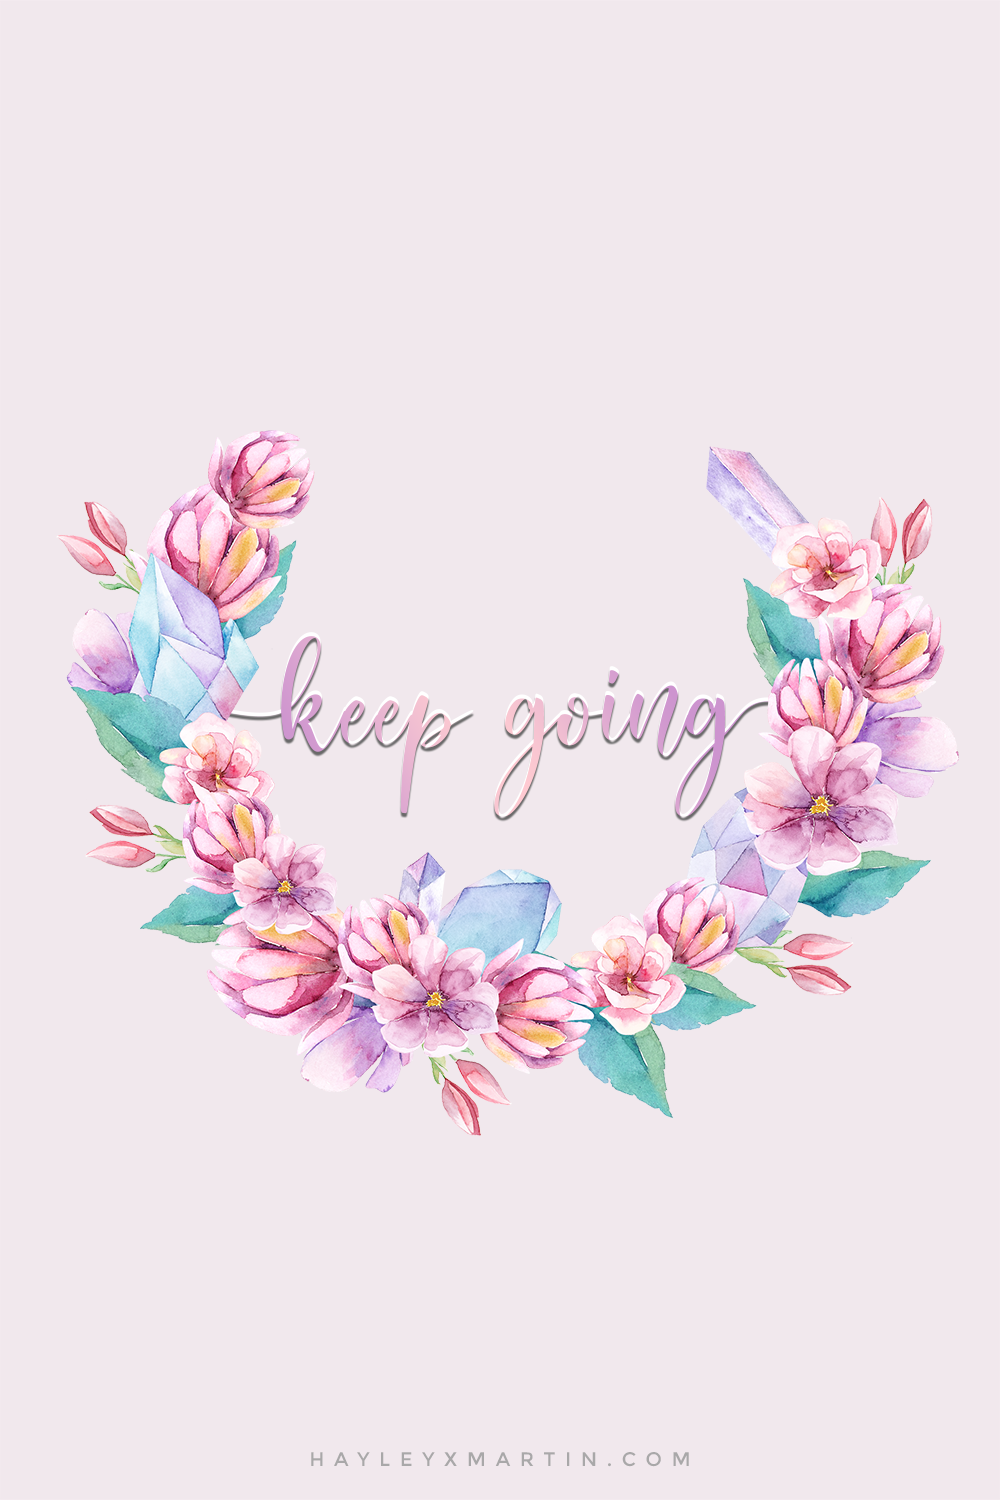 KEEP GOING | MOTIVATIONAL QUOTES | INSPIRATIONAL QUOTES | HAYLEYXMARTIN.COM